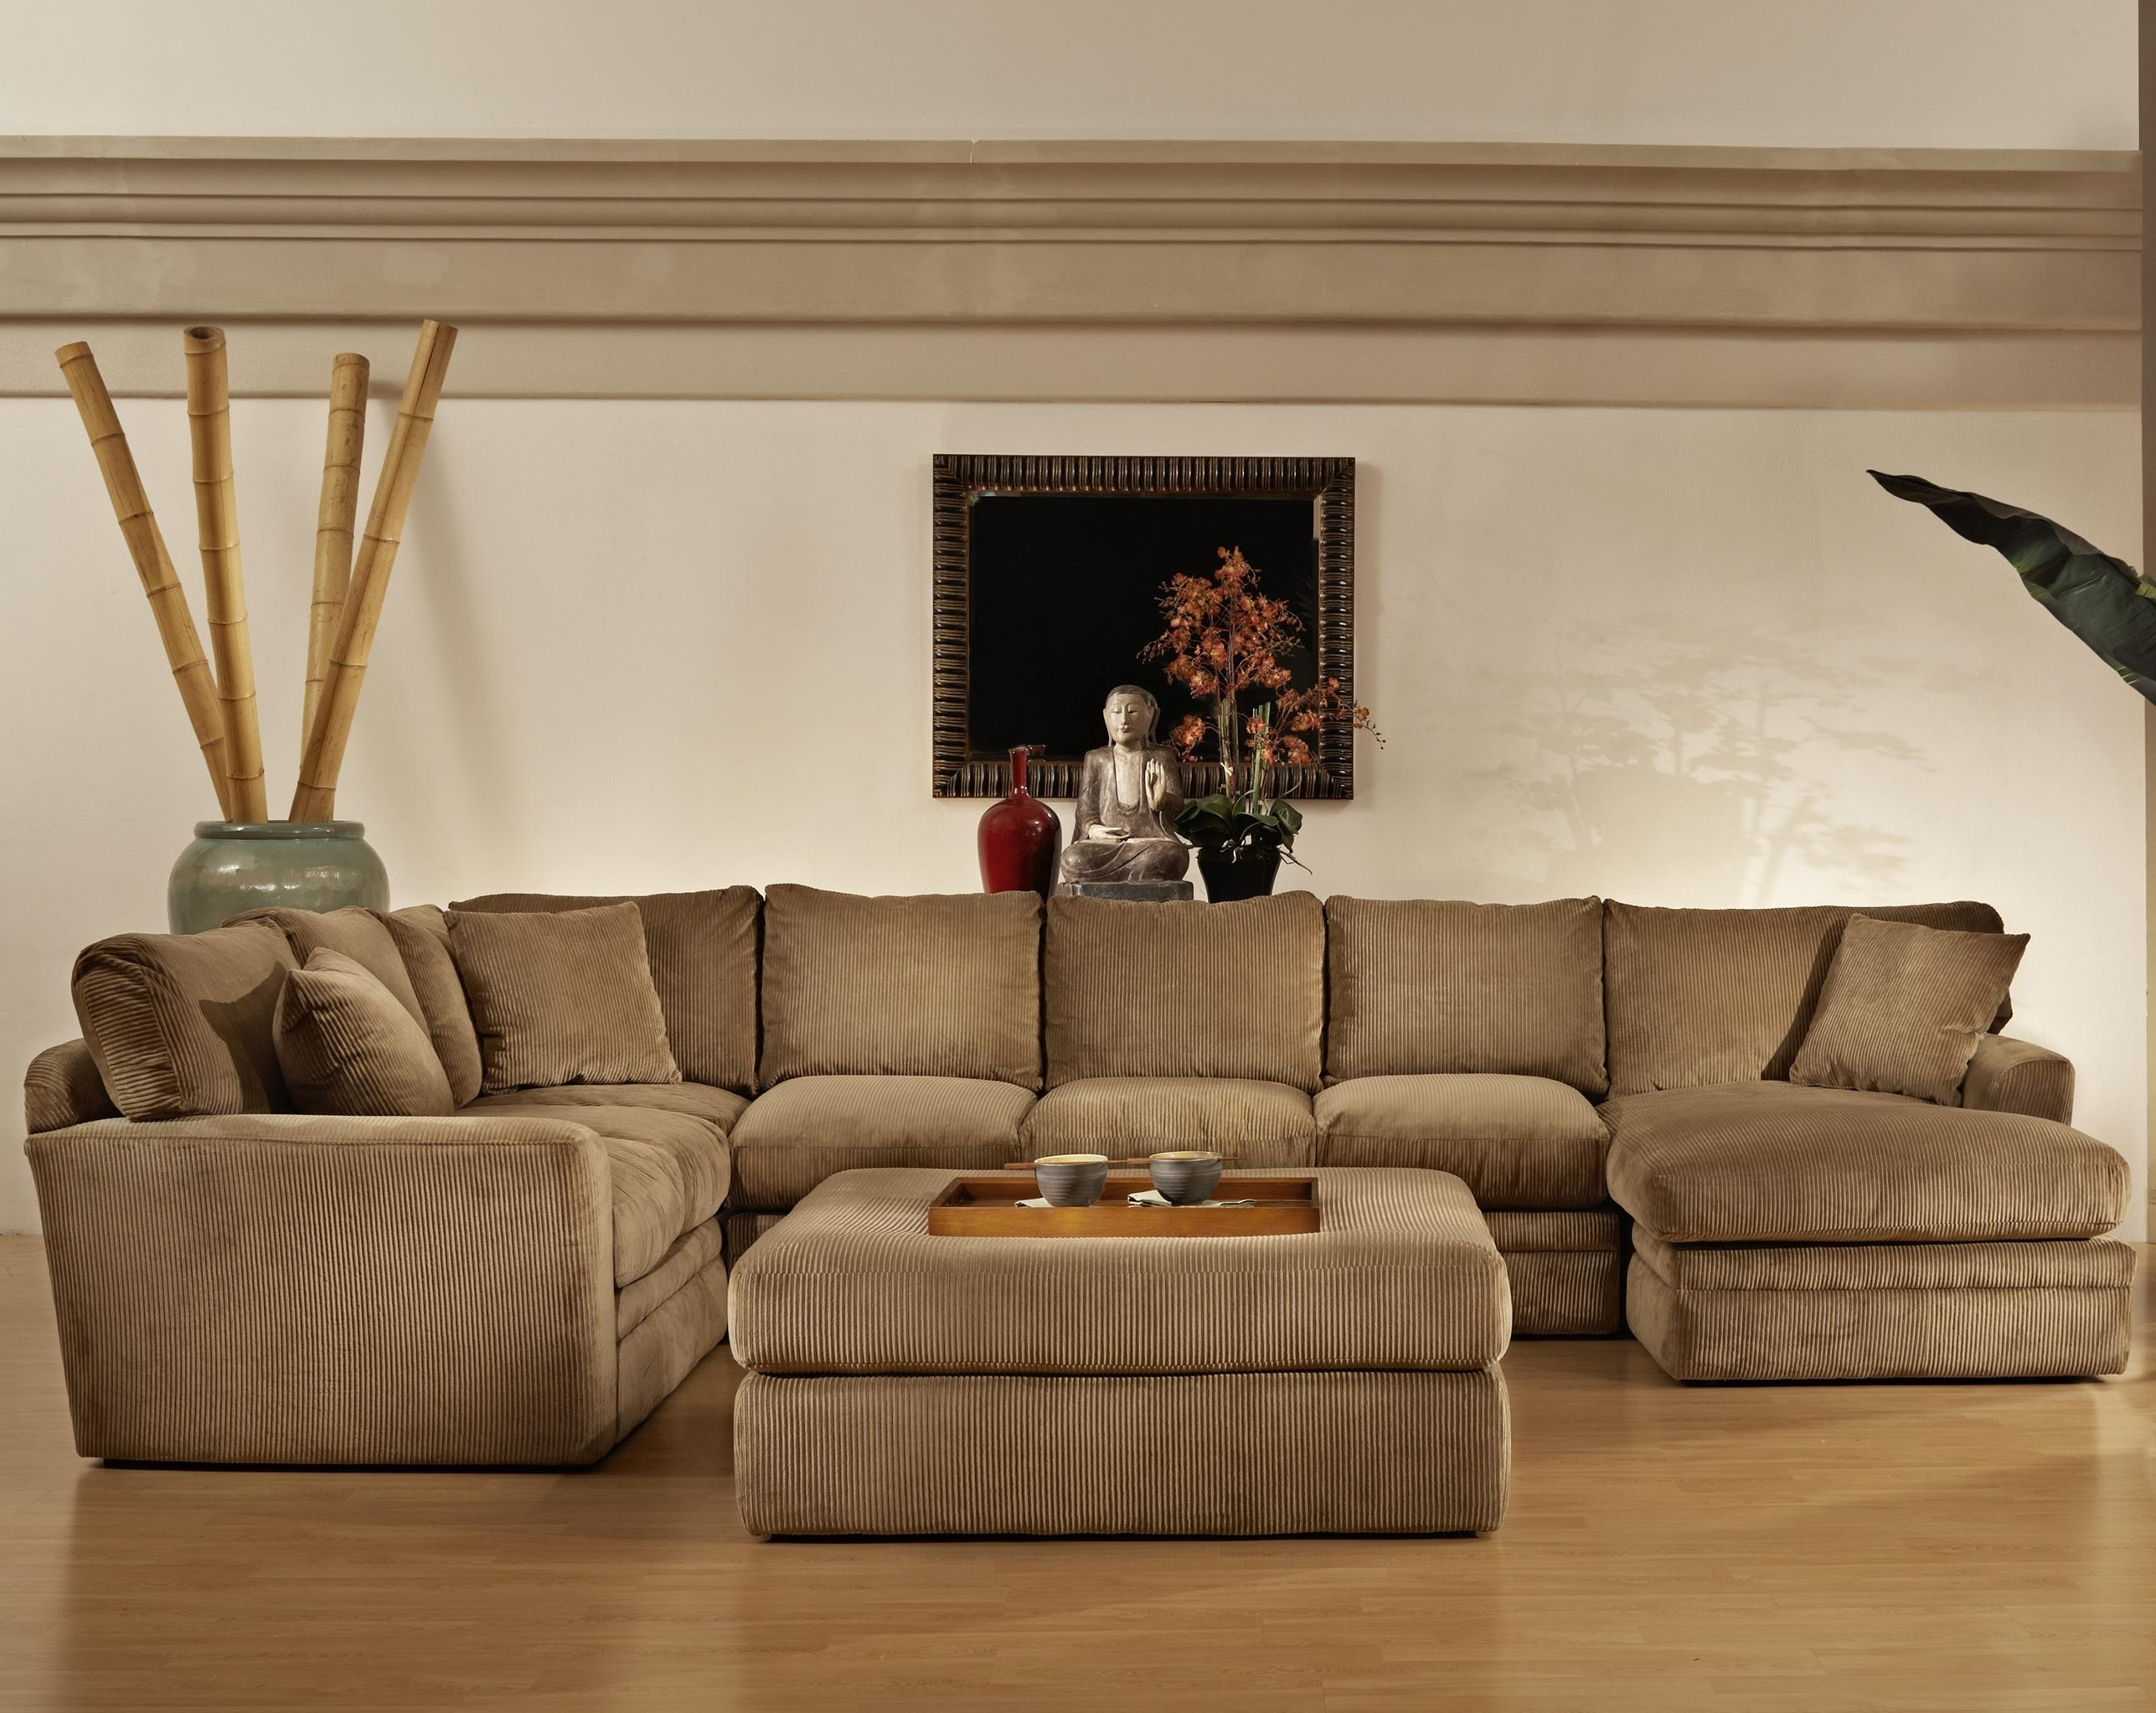 Extra Large Sectional Sofa With Chaise And Ottoman U Shaped In With Regard To Most Recent Extra Large U Shaped Sectionals (View 17 of 20)